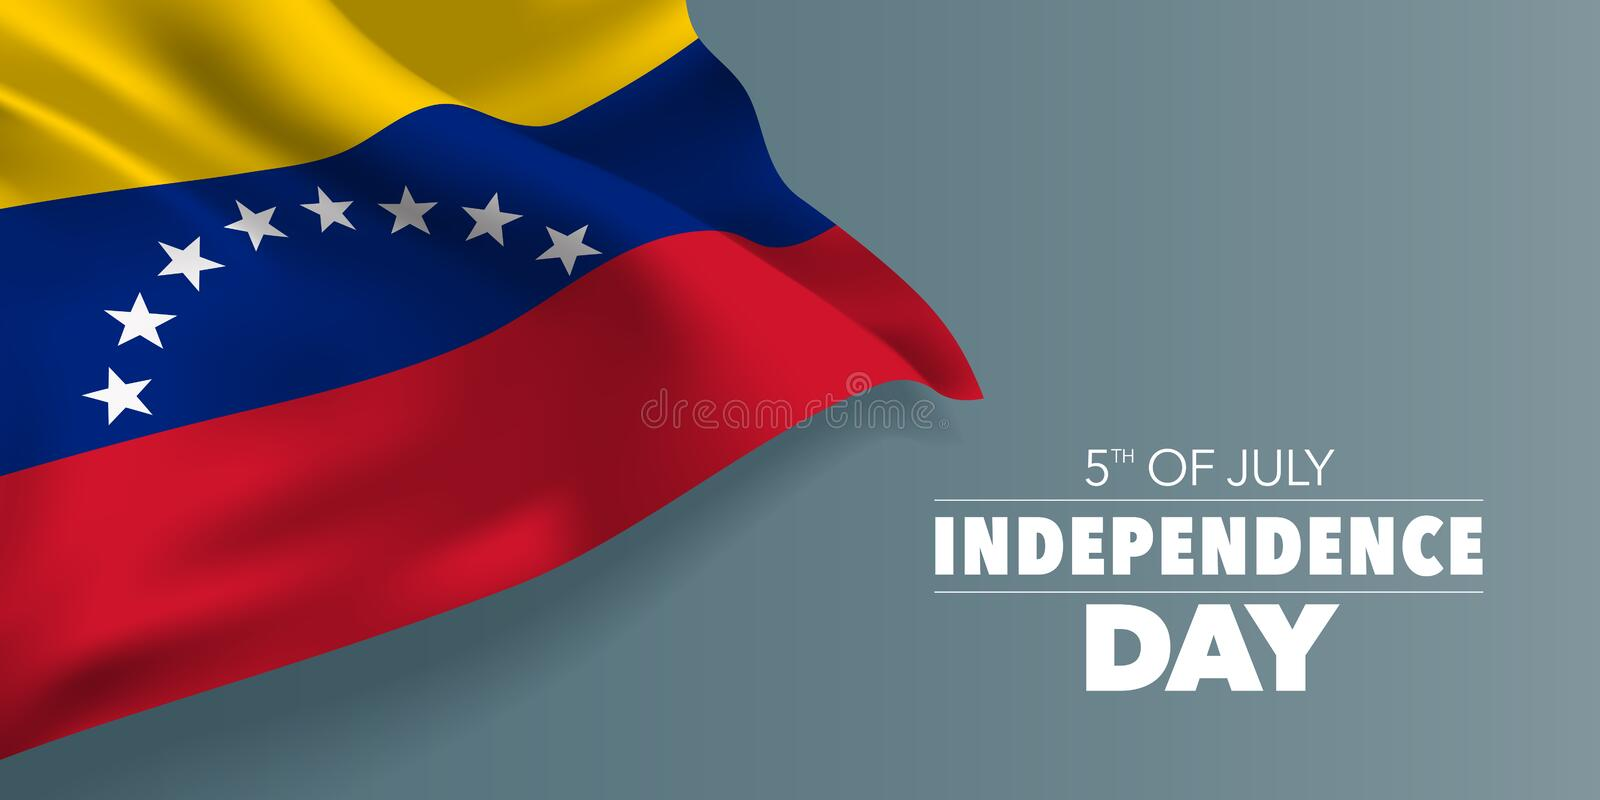 Venezuela happy independence day greeting card, banner with template text vector illustration. Venezuelan memorial holiday 5th of July design element with flag royalty free illustration